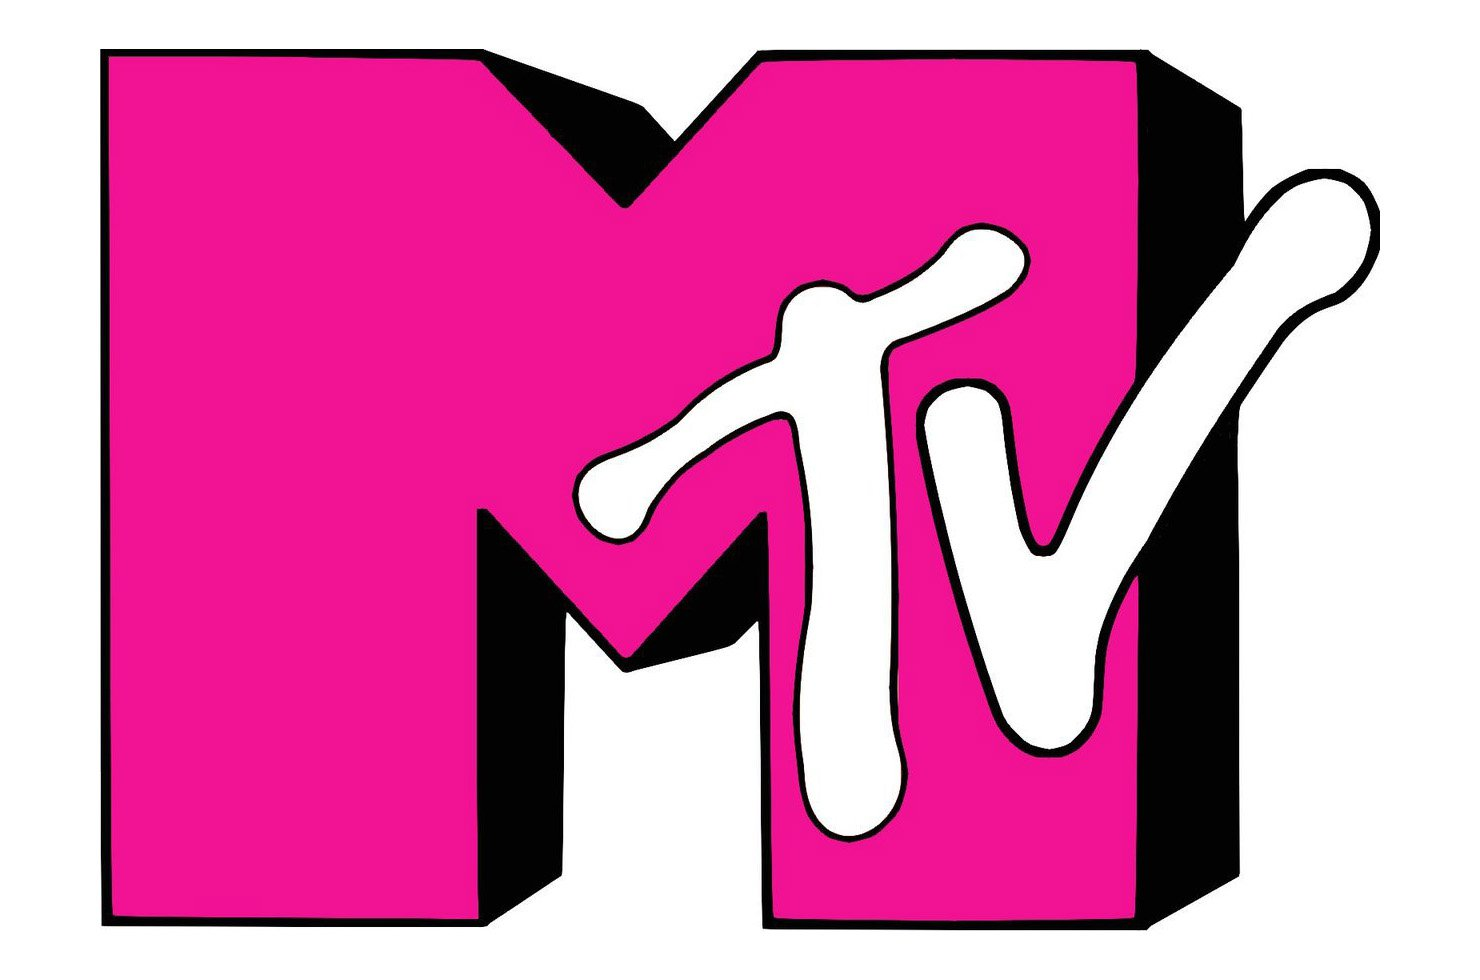 mtv logo mtv symbol meaning history and evolution rh 1000logos net  yo mtv raps logo font